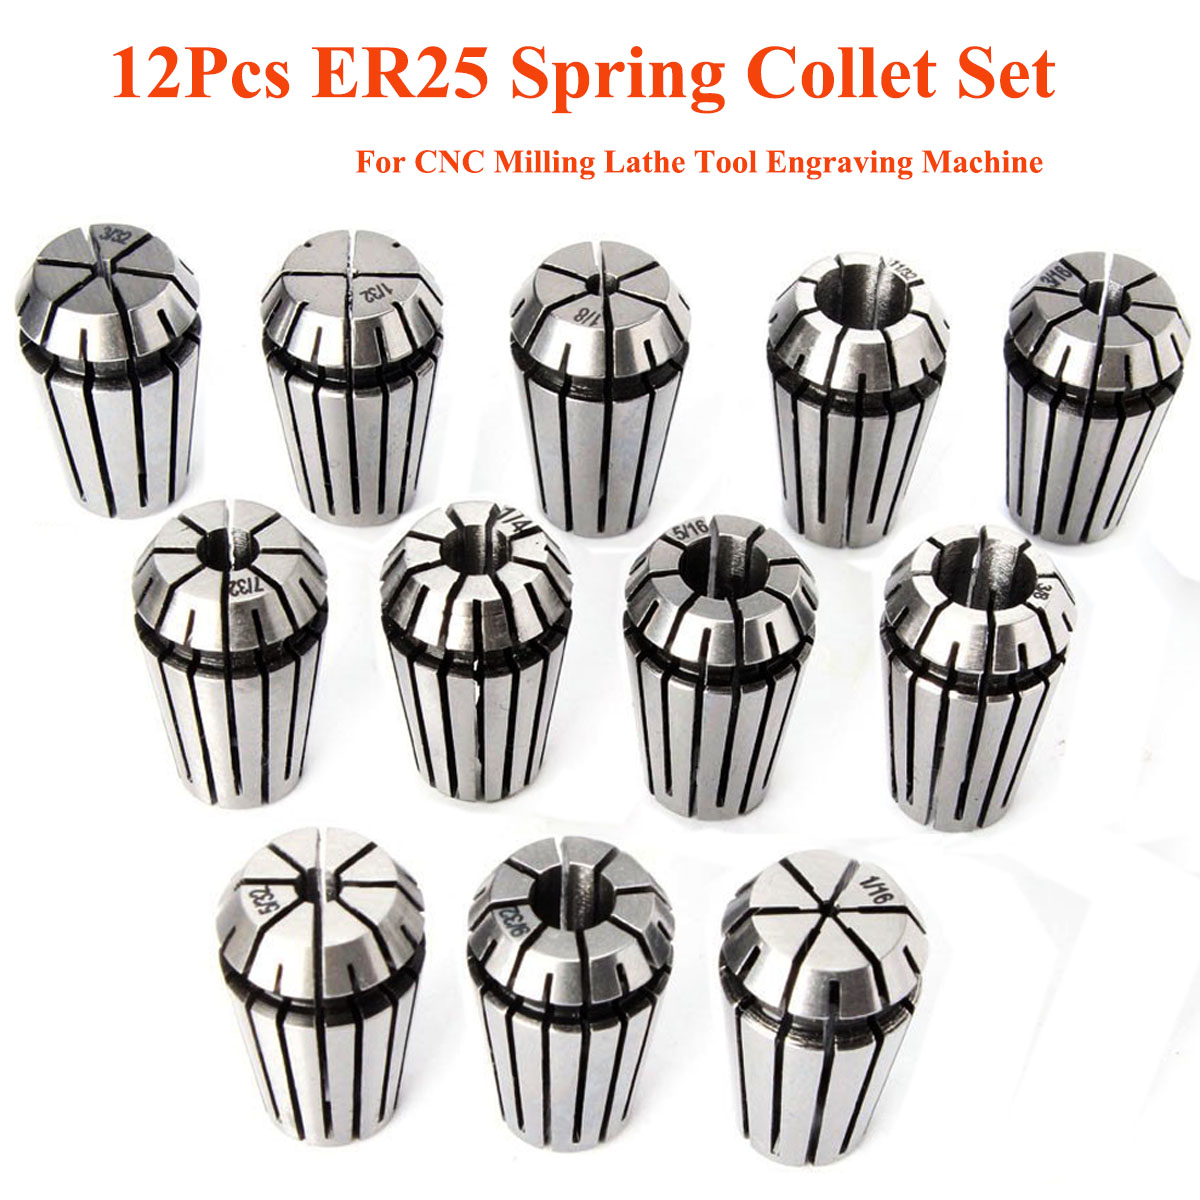 12pcs ER25 Chuck Collet 1/8 to 5/8 Inch Spring Collet Set Machine Tool Holder ER25 Collet for CNC Milling Lathe Tool босоножки l biagiotti босоножки